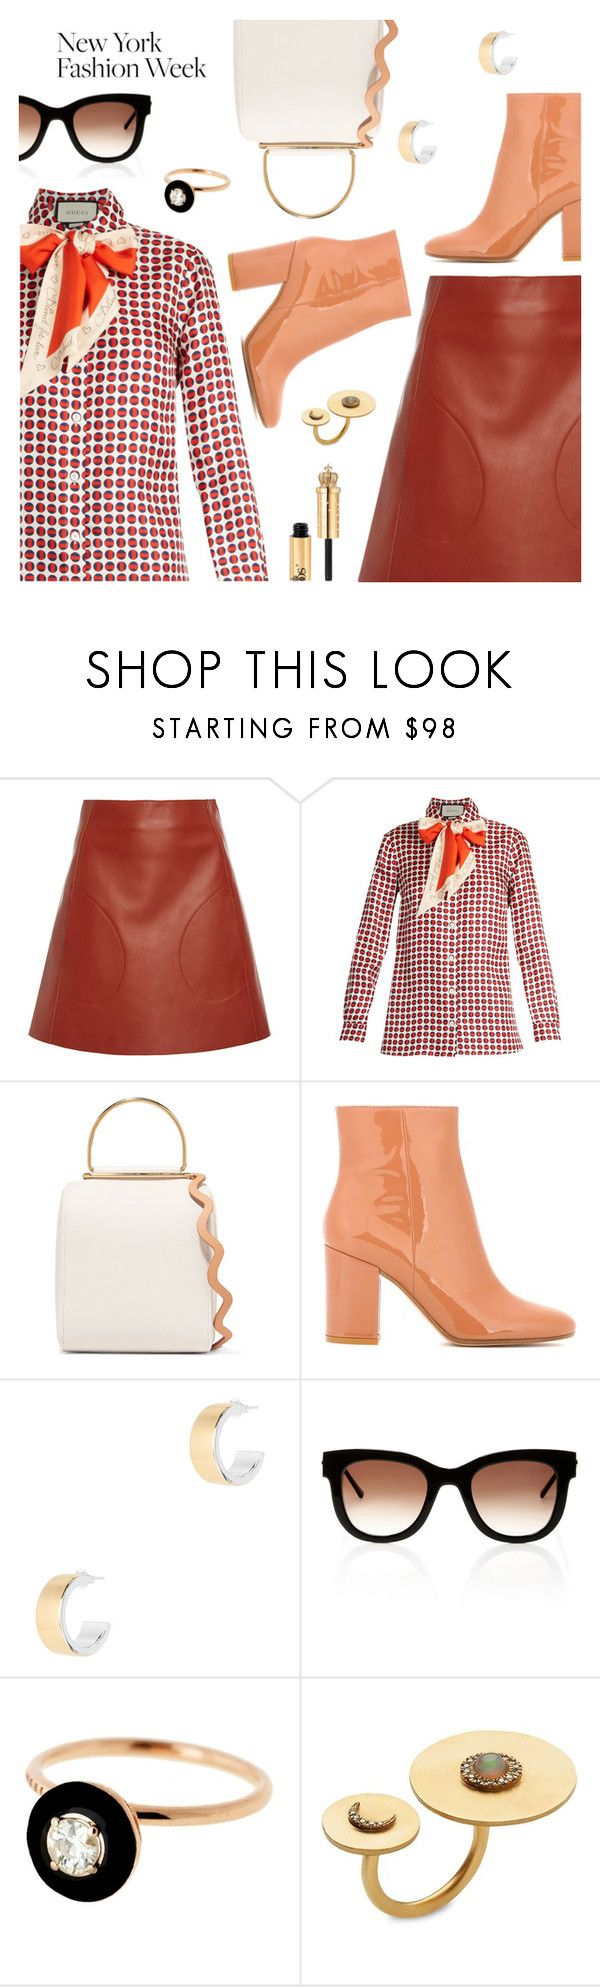 """What to Wear to NYFW"" by dressedbyrose ❤ liked on Polyvore featuring Khaite, Gucci, Roksanda, Gianvito Rossi, Argento Vivo, Thierry Lasry, Selim Mouzannar, NYFW, ootd and polyvoreeditorial"